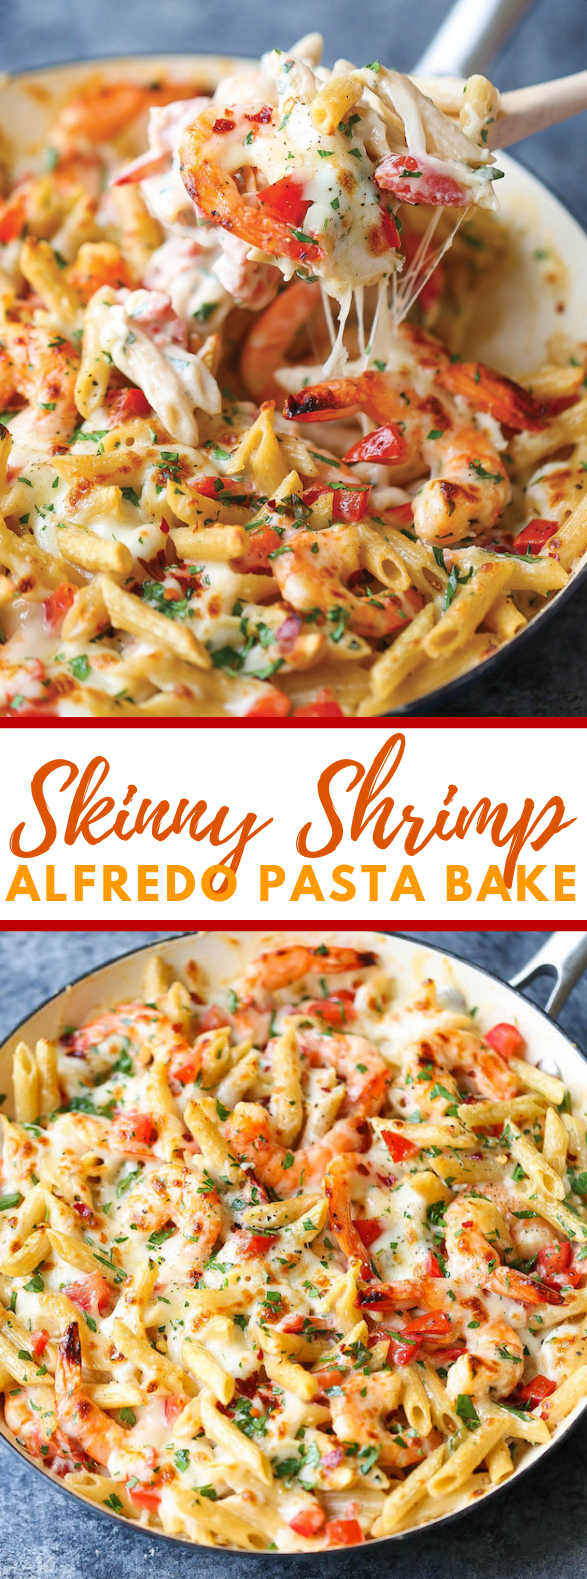 SKINNY SHRIMP ALFREDO PASTA BAKE #dinner #deliciousfood